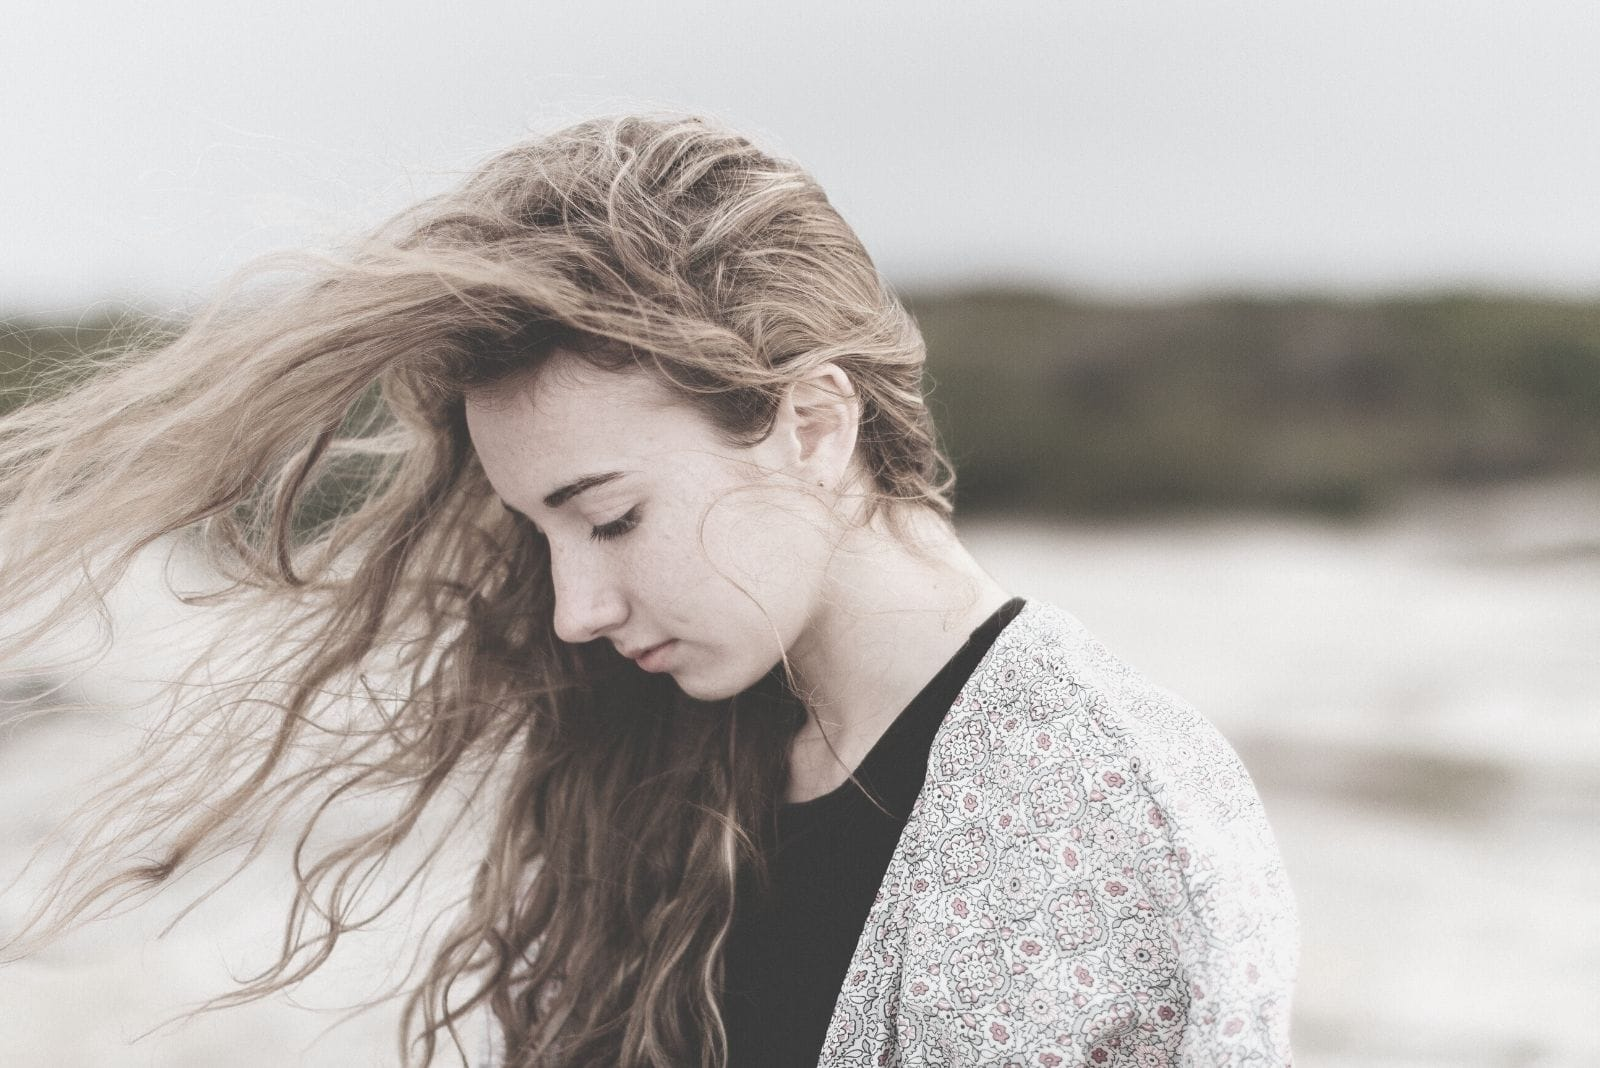 sad young woman near the beach walking with hair blown by the air bowing head